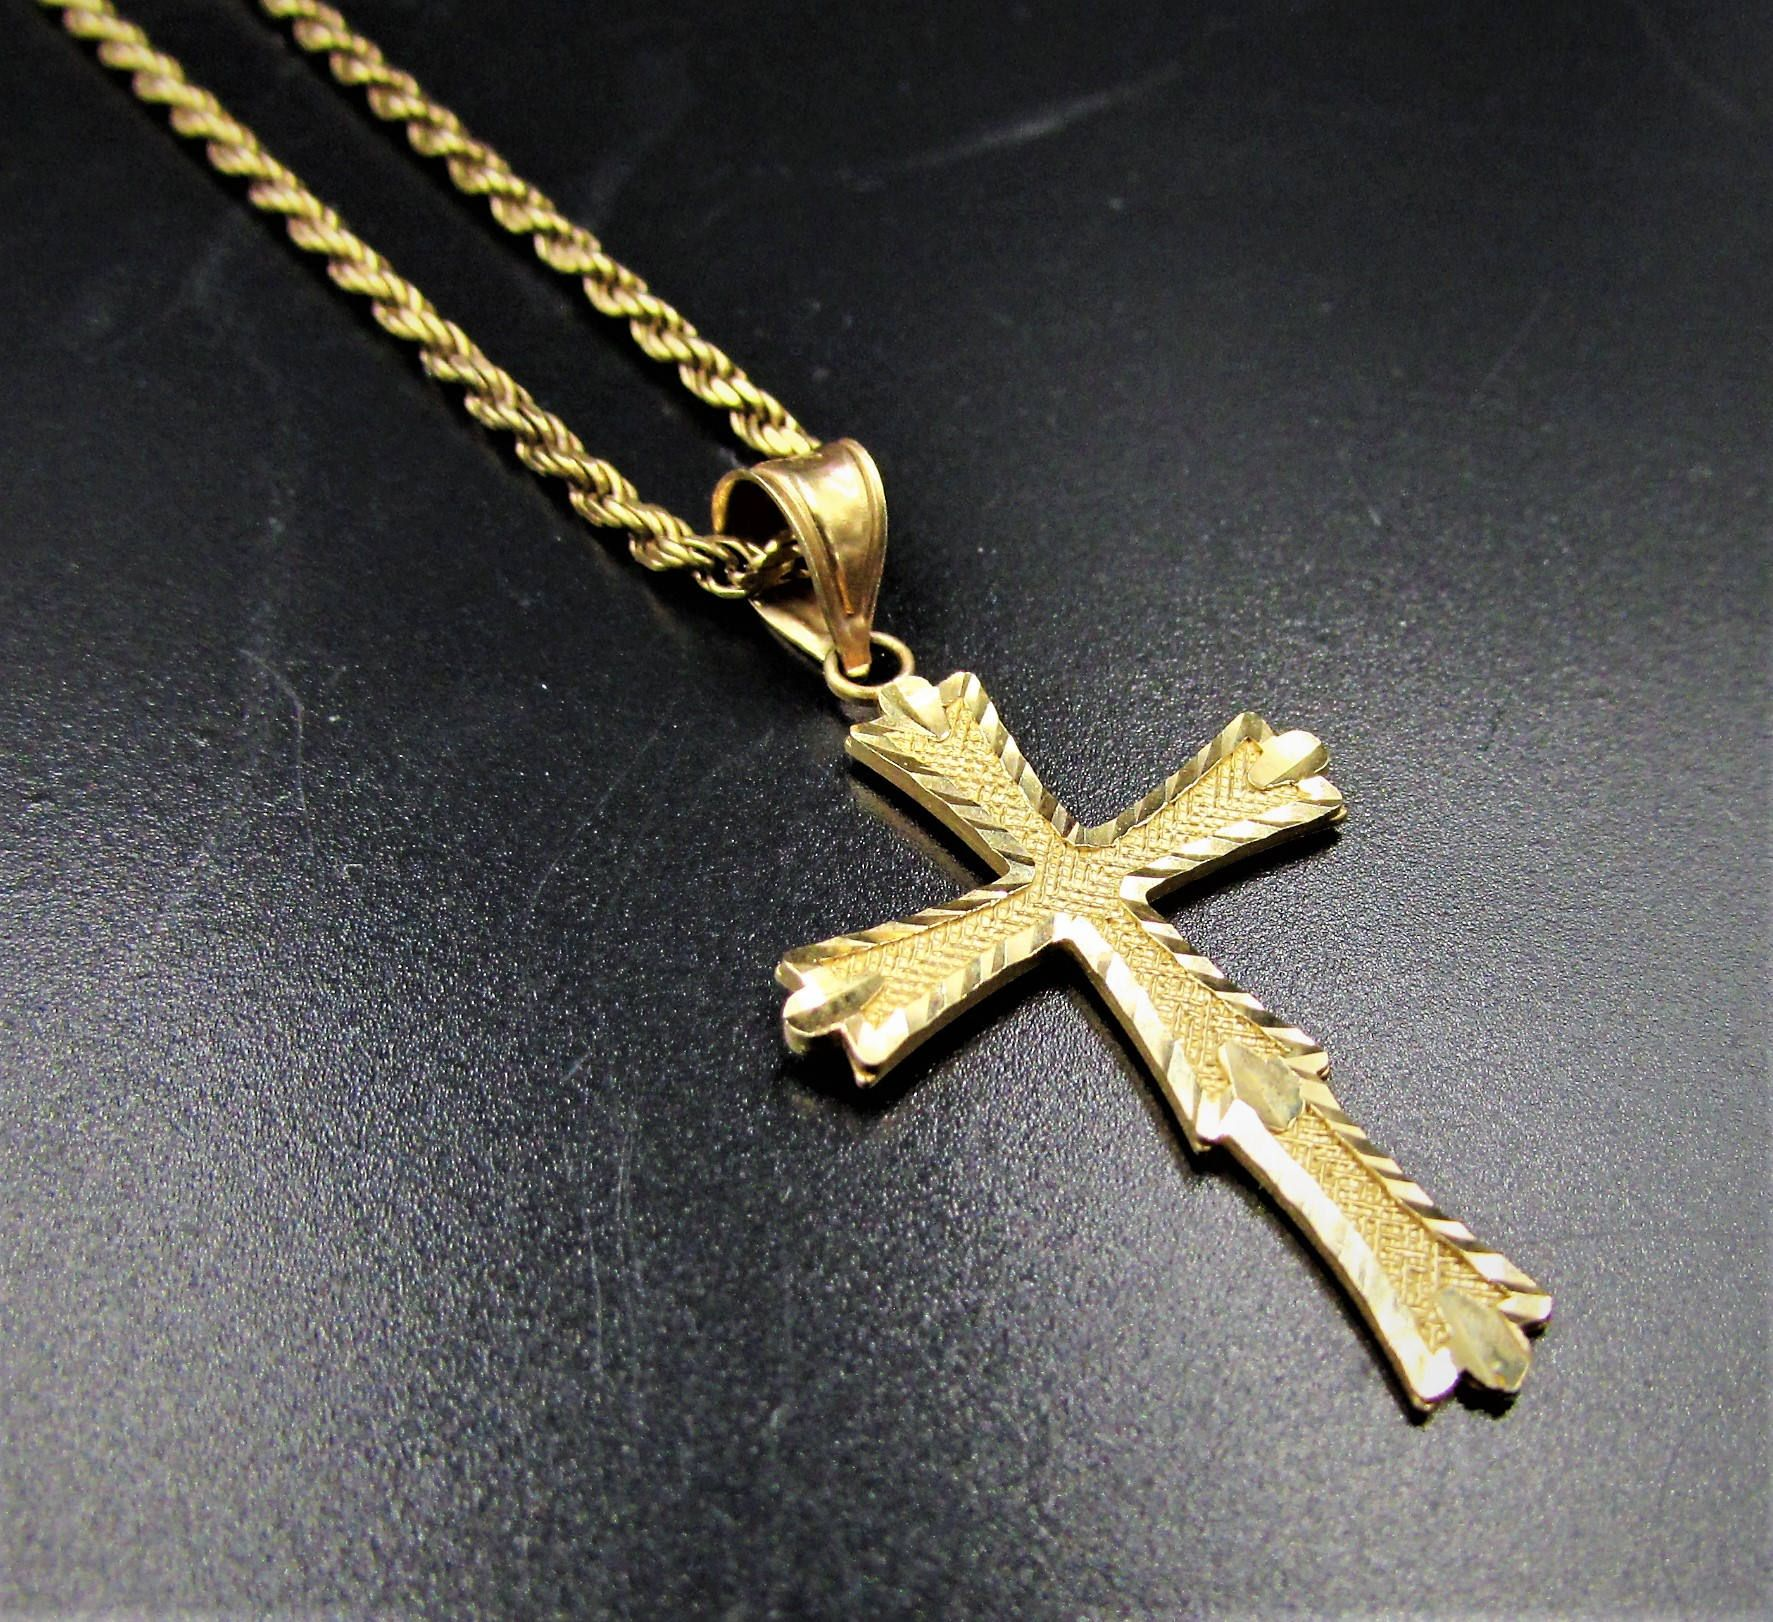 Men S Gold Cross Necklace Ladies Gold 20 Cross Necklace 10k Solid Rope Chain 10k Cross Pen Gold Cross Pendant Gold Cross Necklace Gold Crucifix Necklace